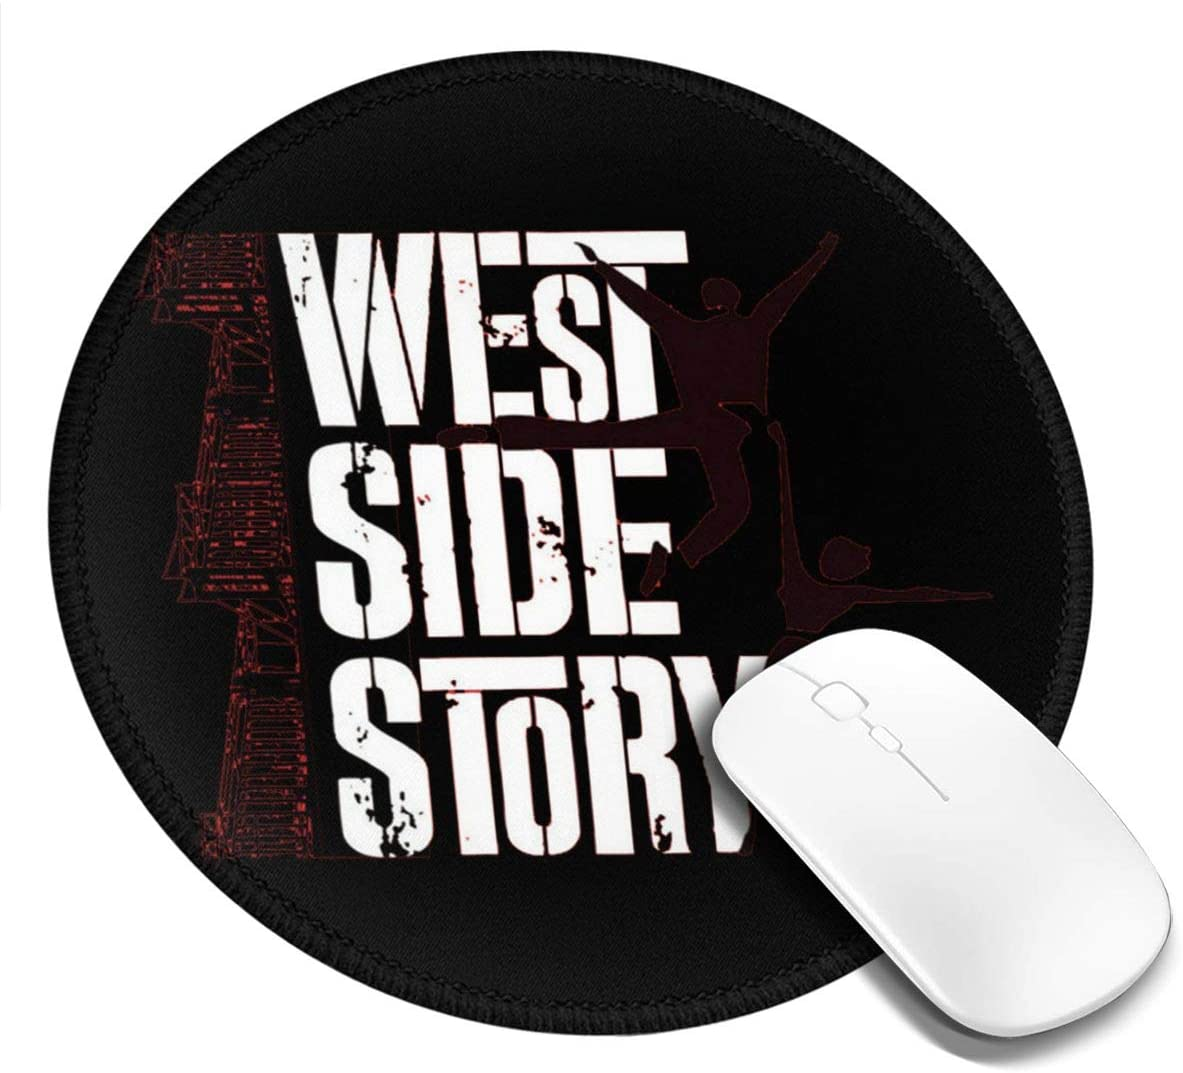 West Side Story Theater Printed Round Mouse pad, Office Desktop or Gaming Cloth Surface Natural Rubber Round Mouse Mat